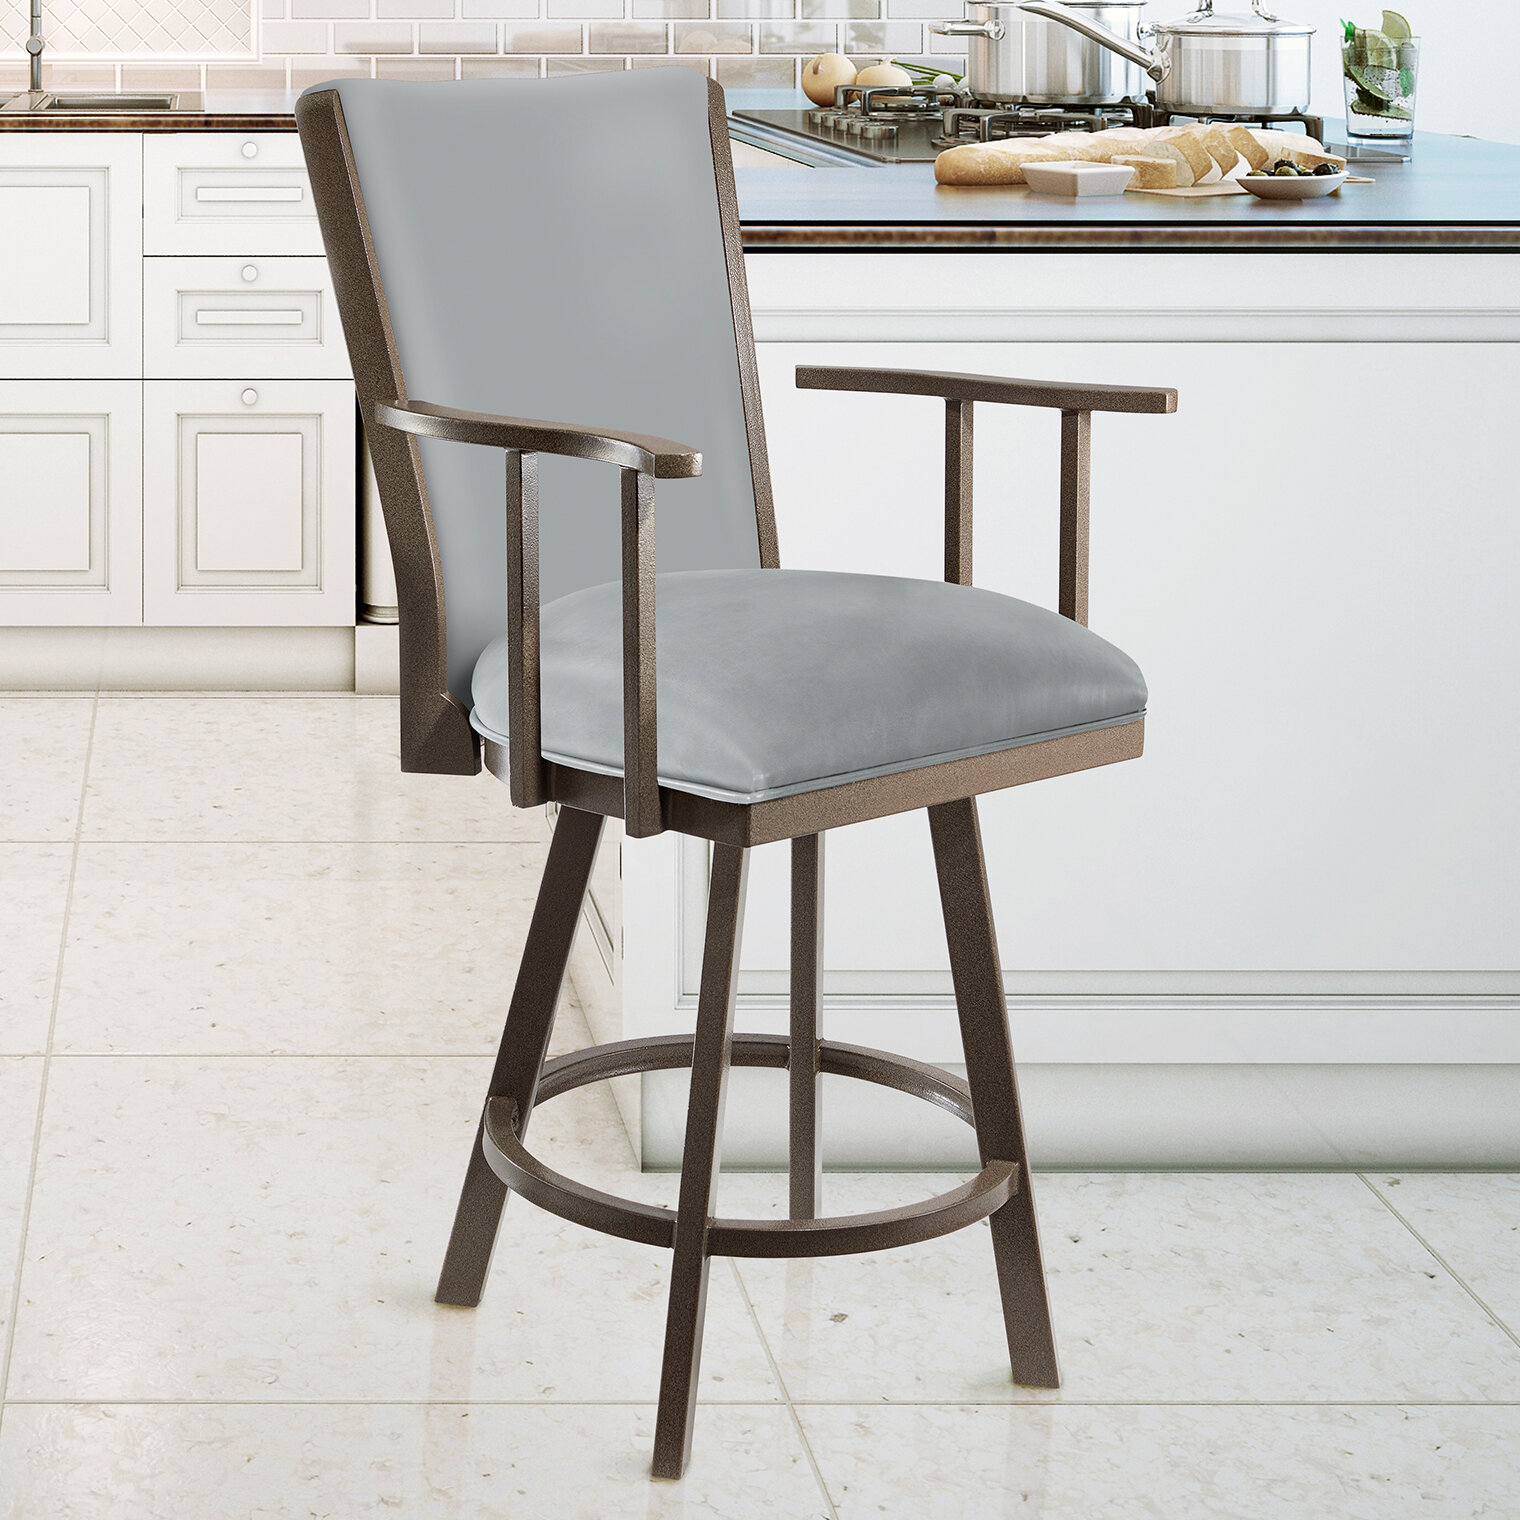 Astounding Taylor Grey Home Bouchard 26 Counter Height Metal Swivel Barstool In Grey Steel Faux Leather And Mocha Grey Finish Theyellowbook Wood Chair Design Ideas Theyellowbookinfo